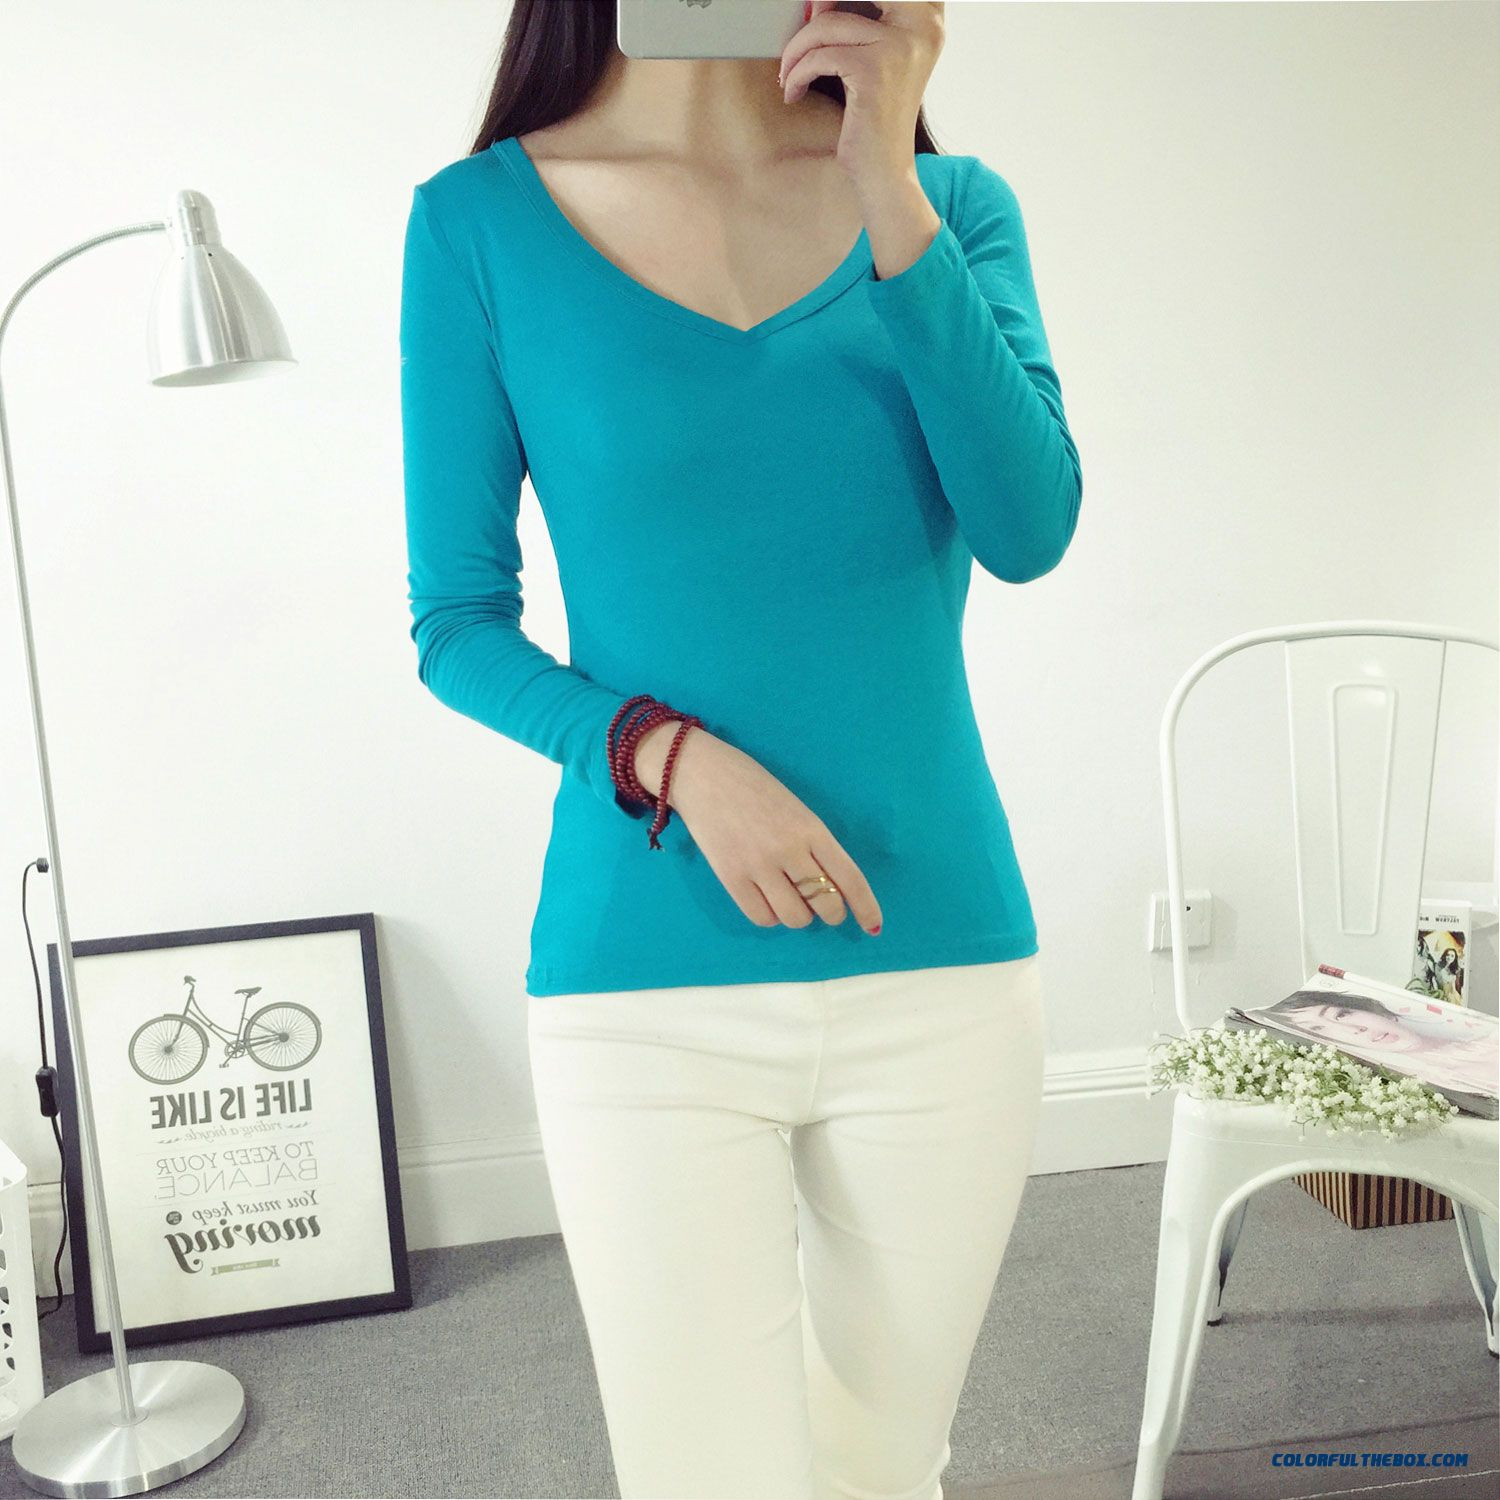 21c777001e9 ... Solid Color V-neck Girls Women Long Sleeve T-shirts Low Price Sale ...